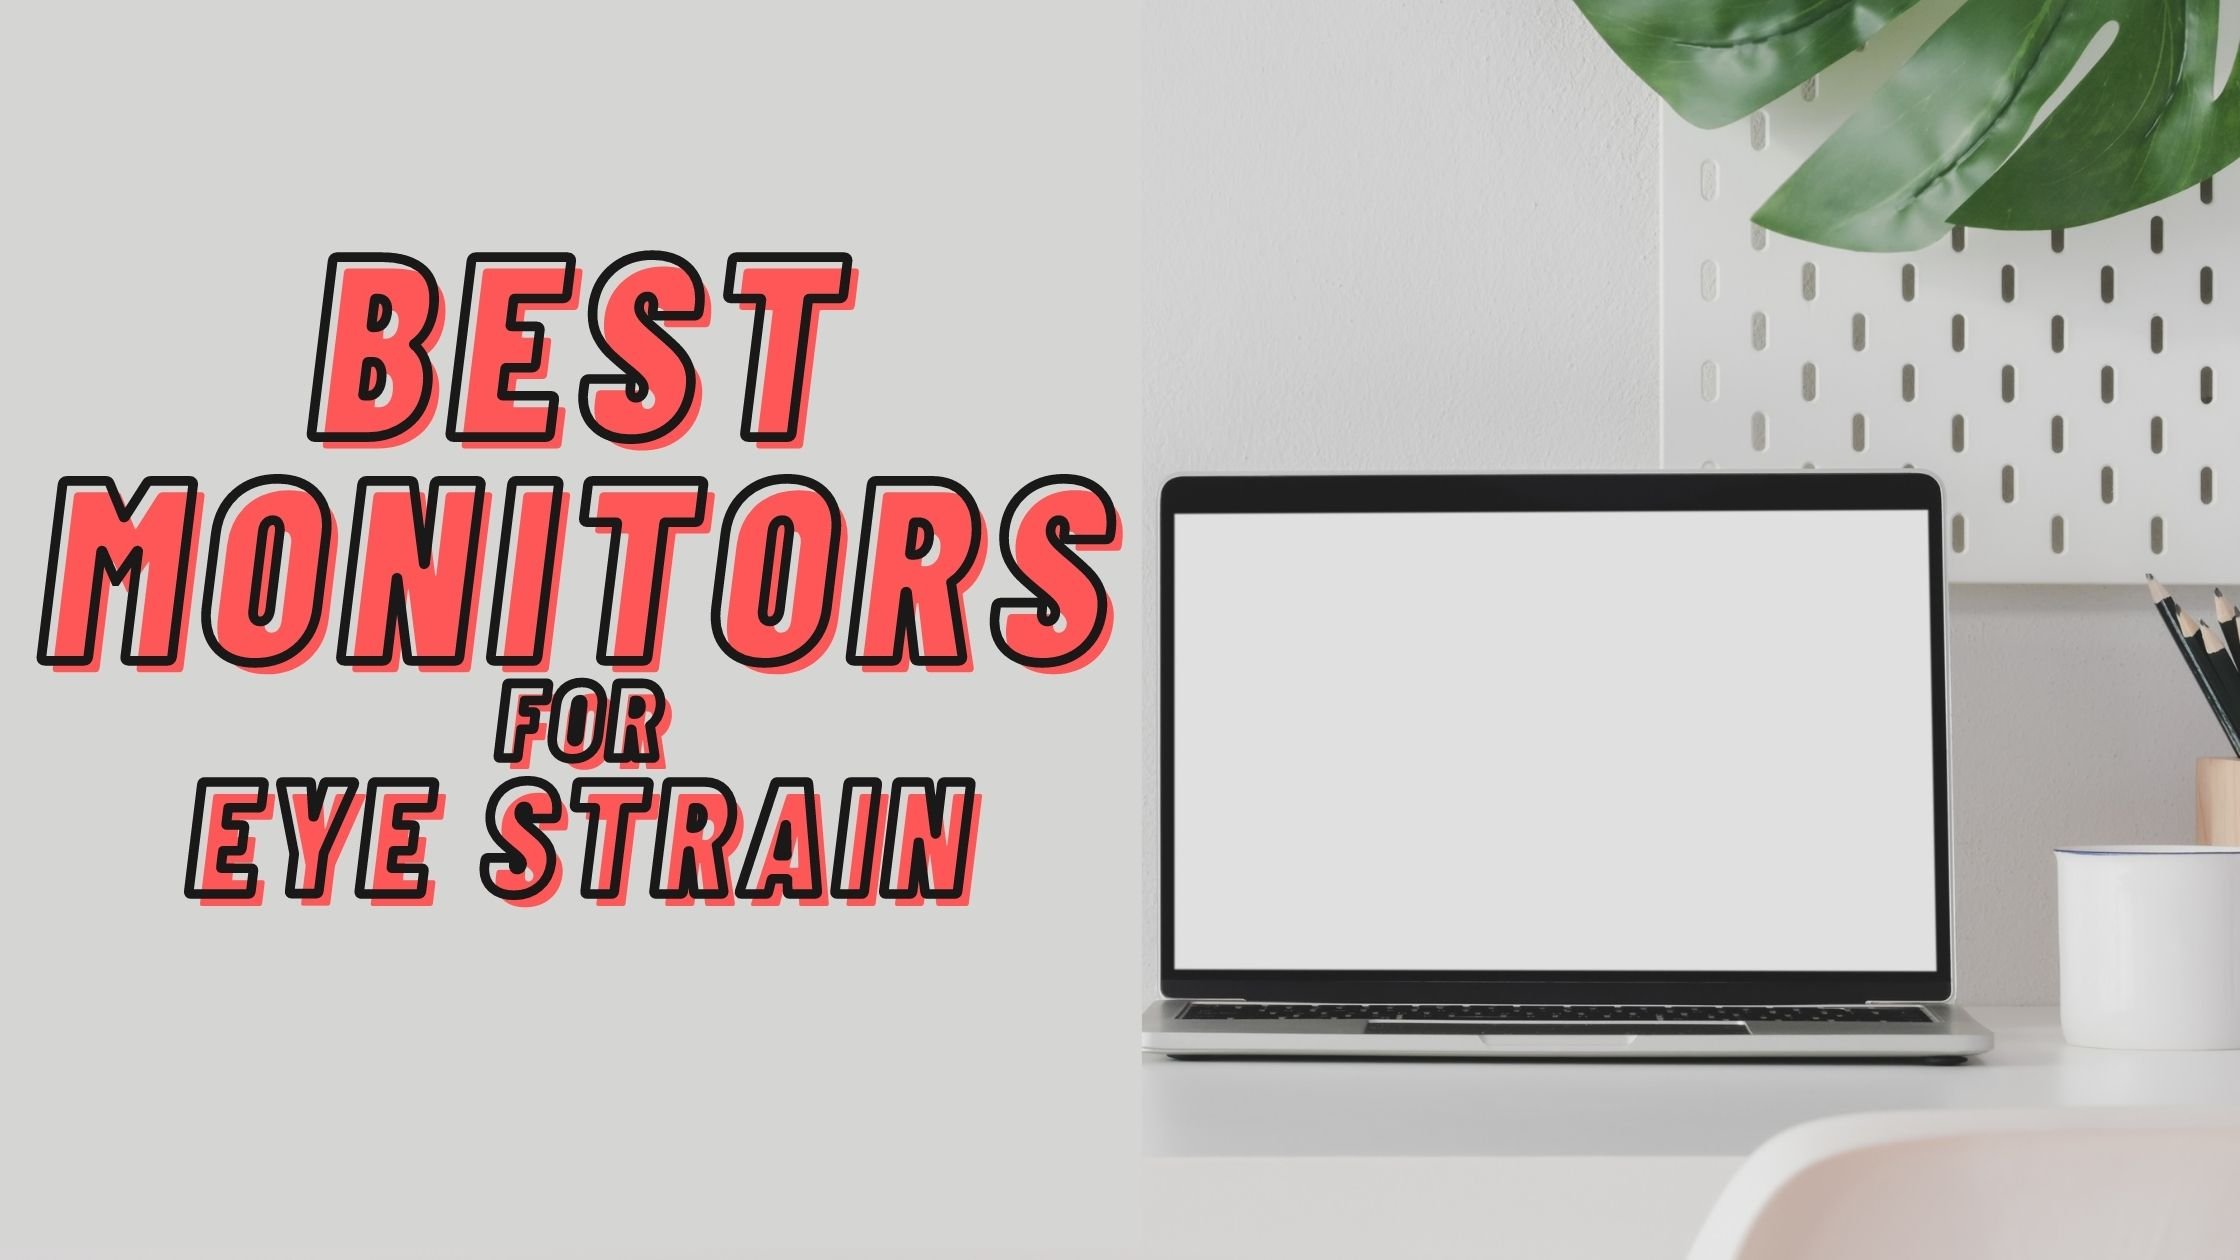 Best Monitors for Eye Strain